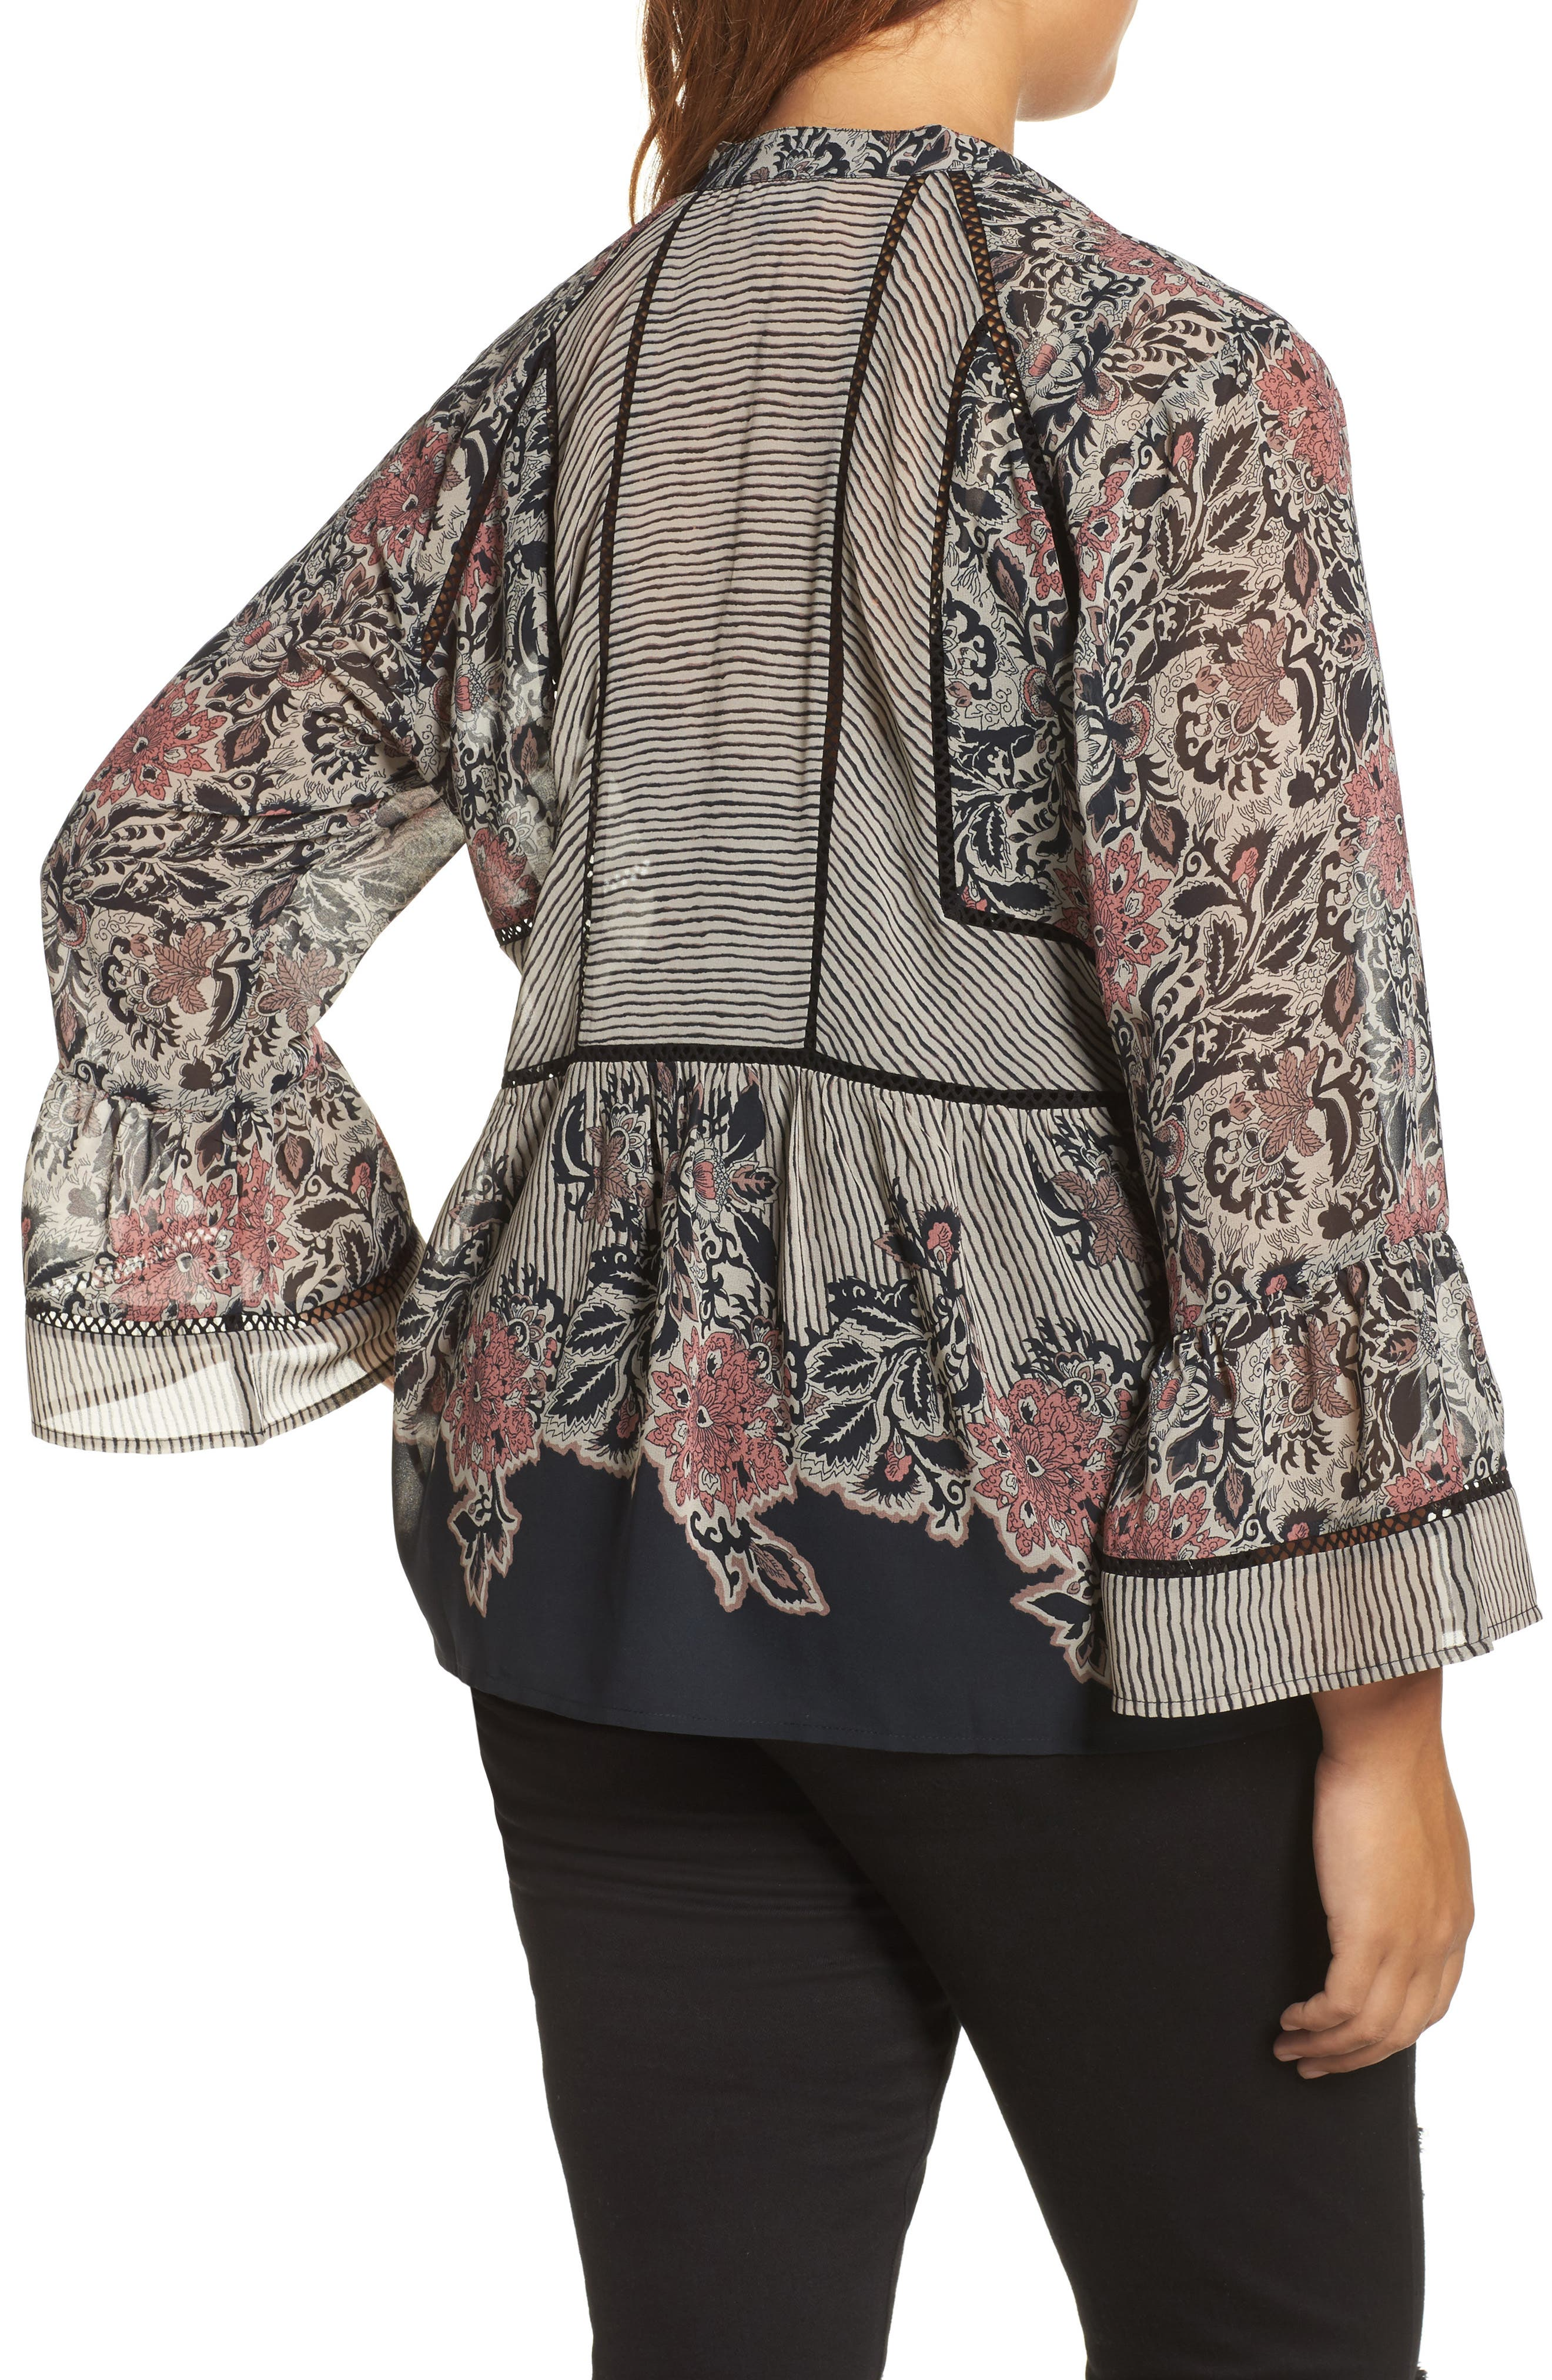 Mixed Print Top,                             Alternate thumbnail 2, color,                             009